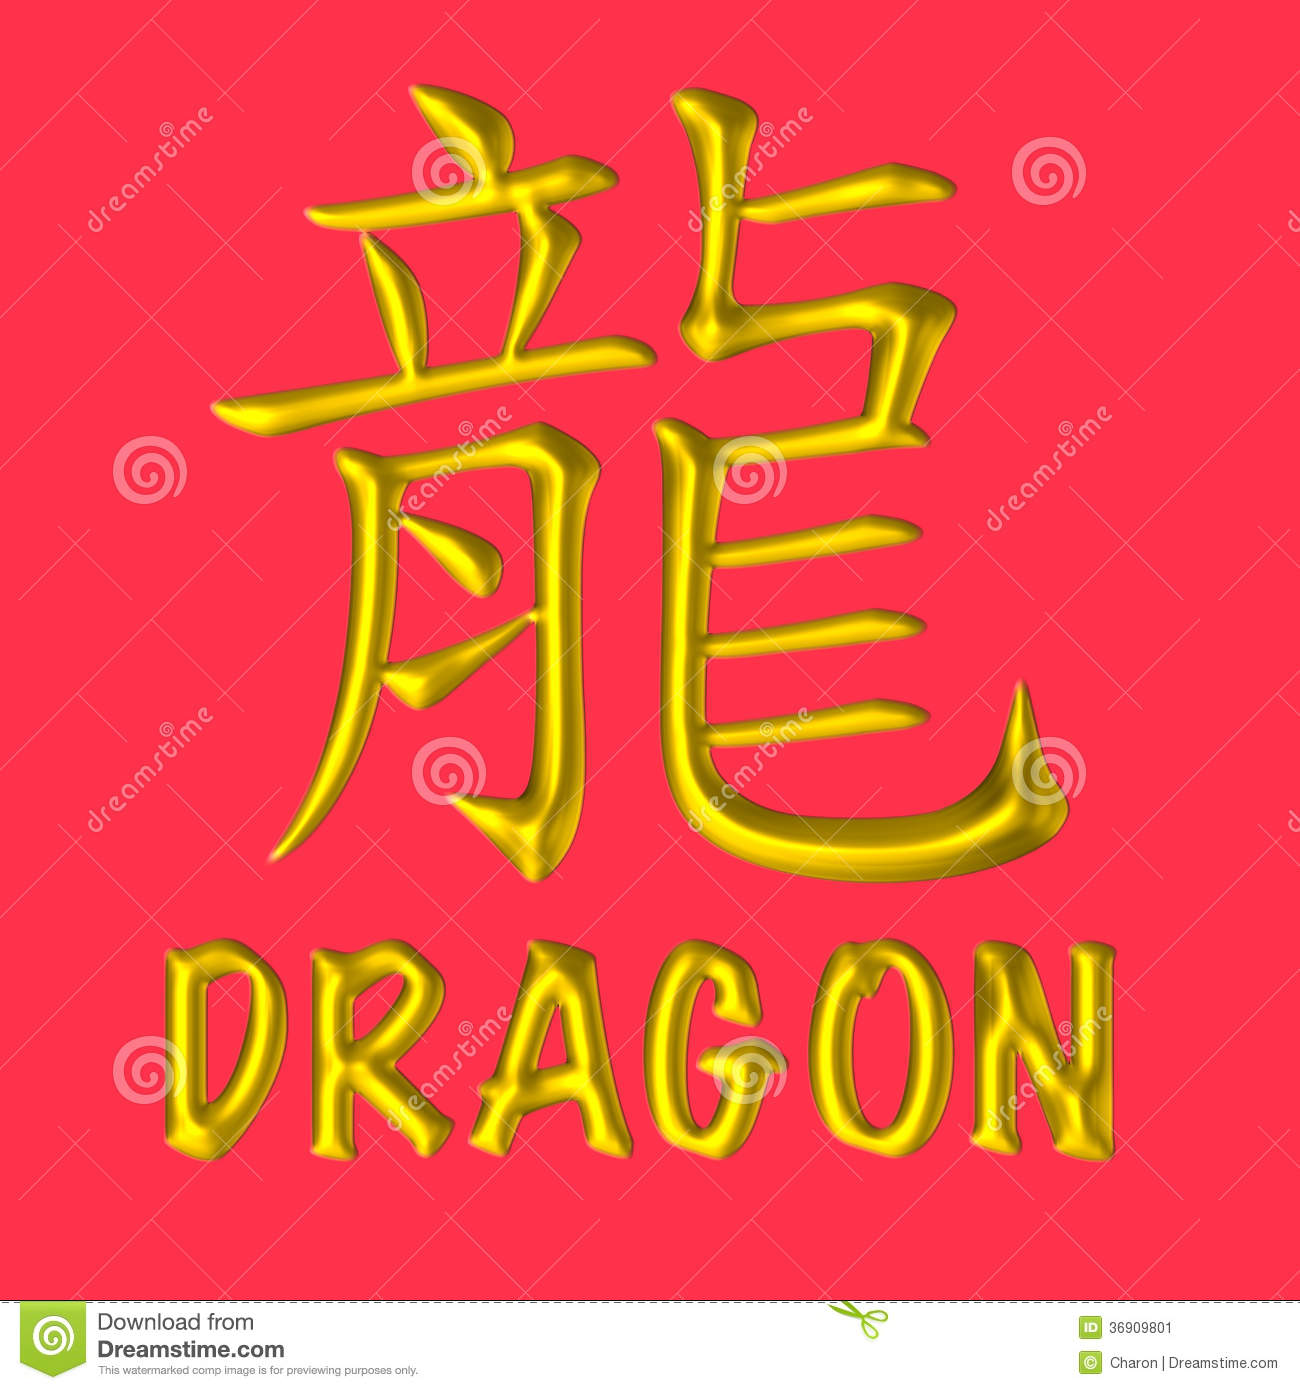 Dragon Golden Chinese Zodiac Stock Image - Image: 36909801